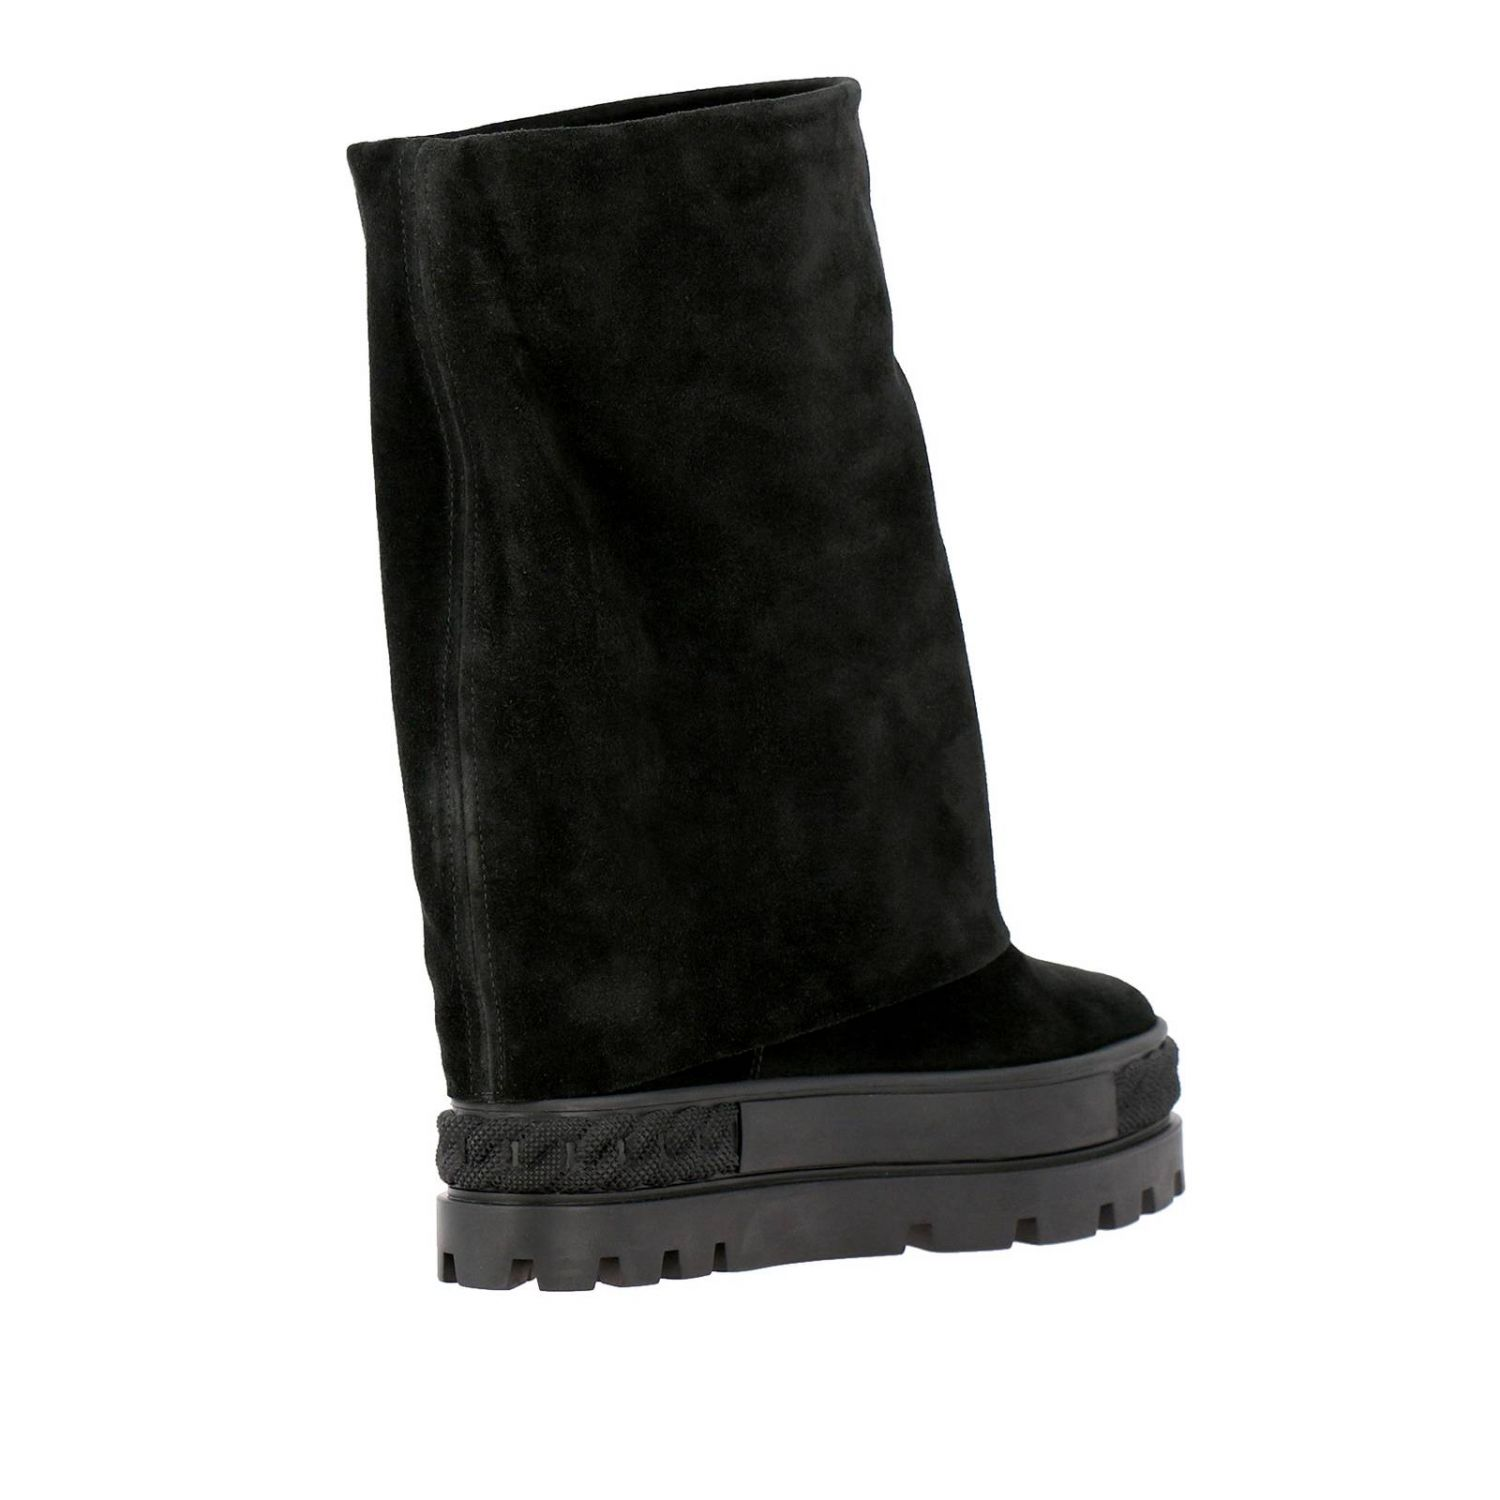 Renna Casadei double face sneaker boots in suede black 4